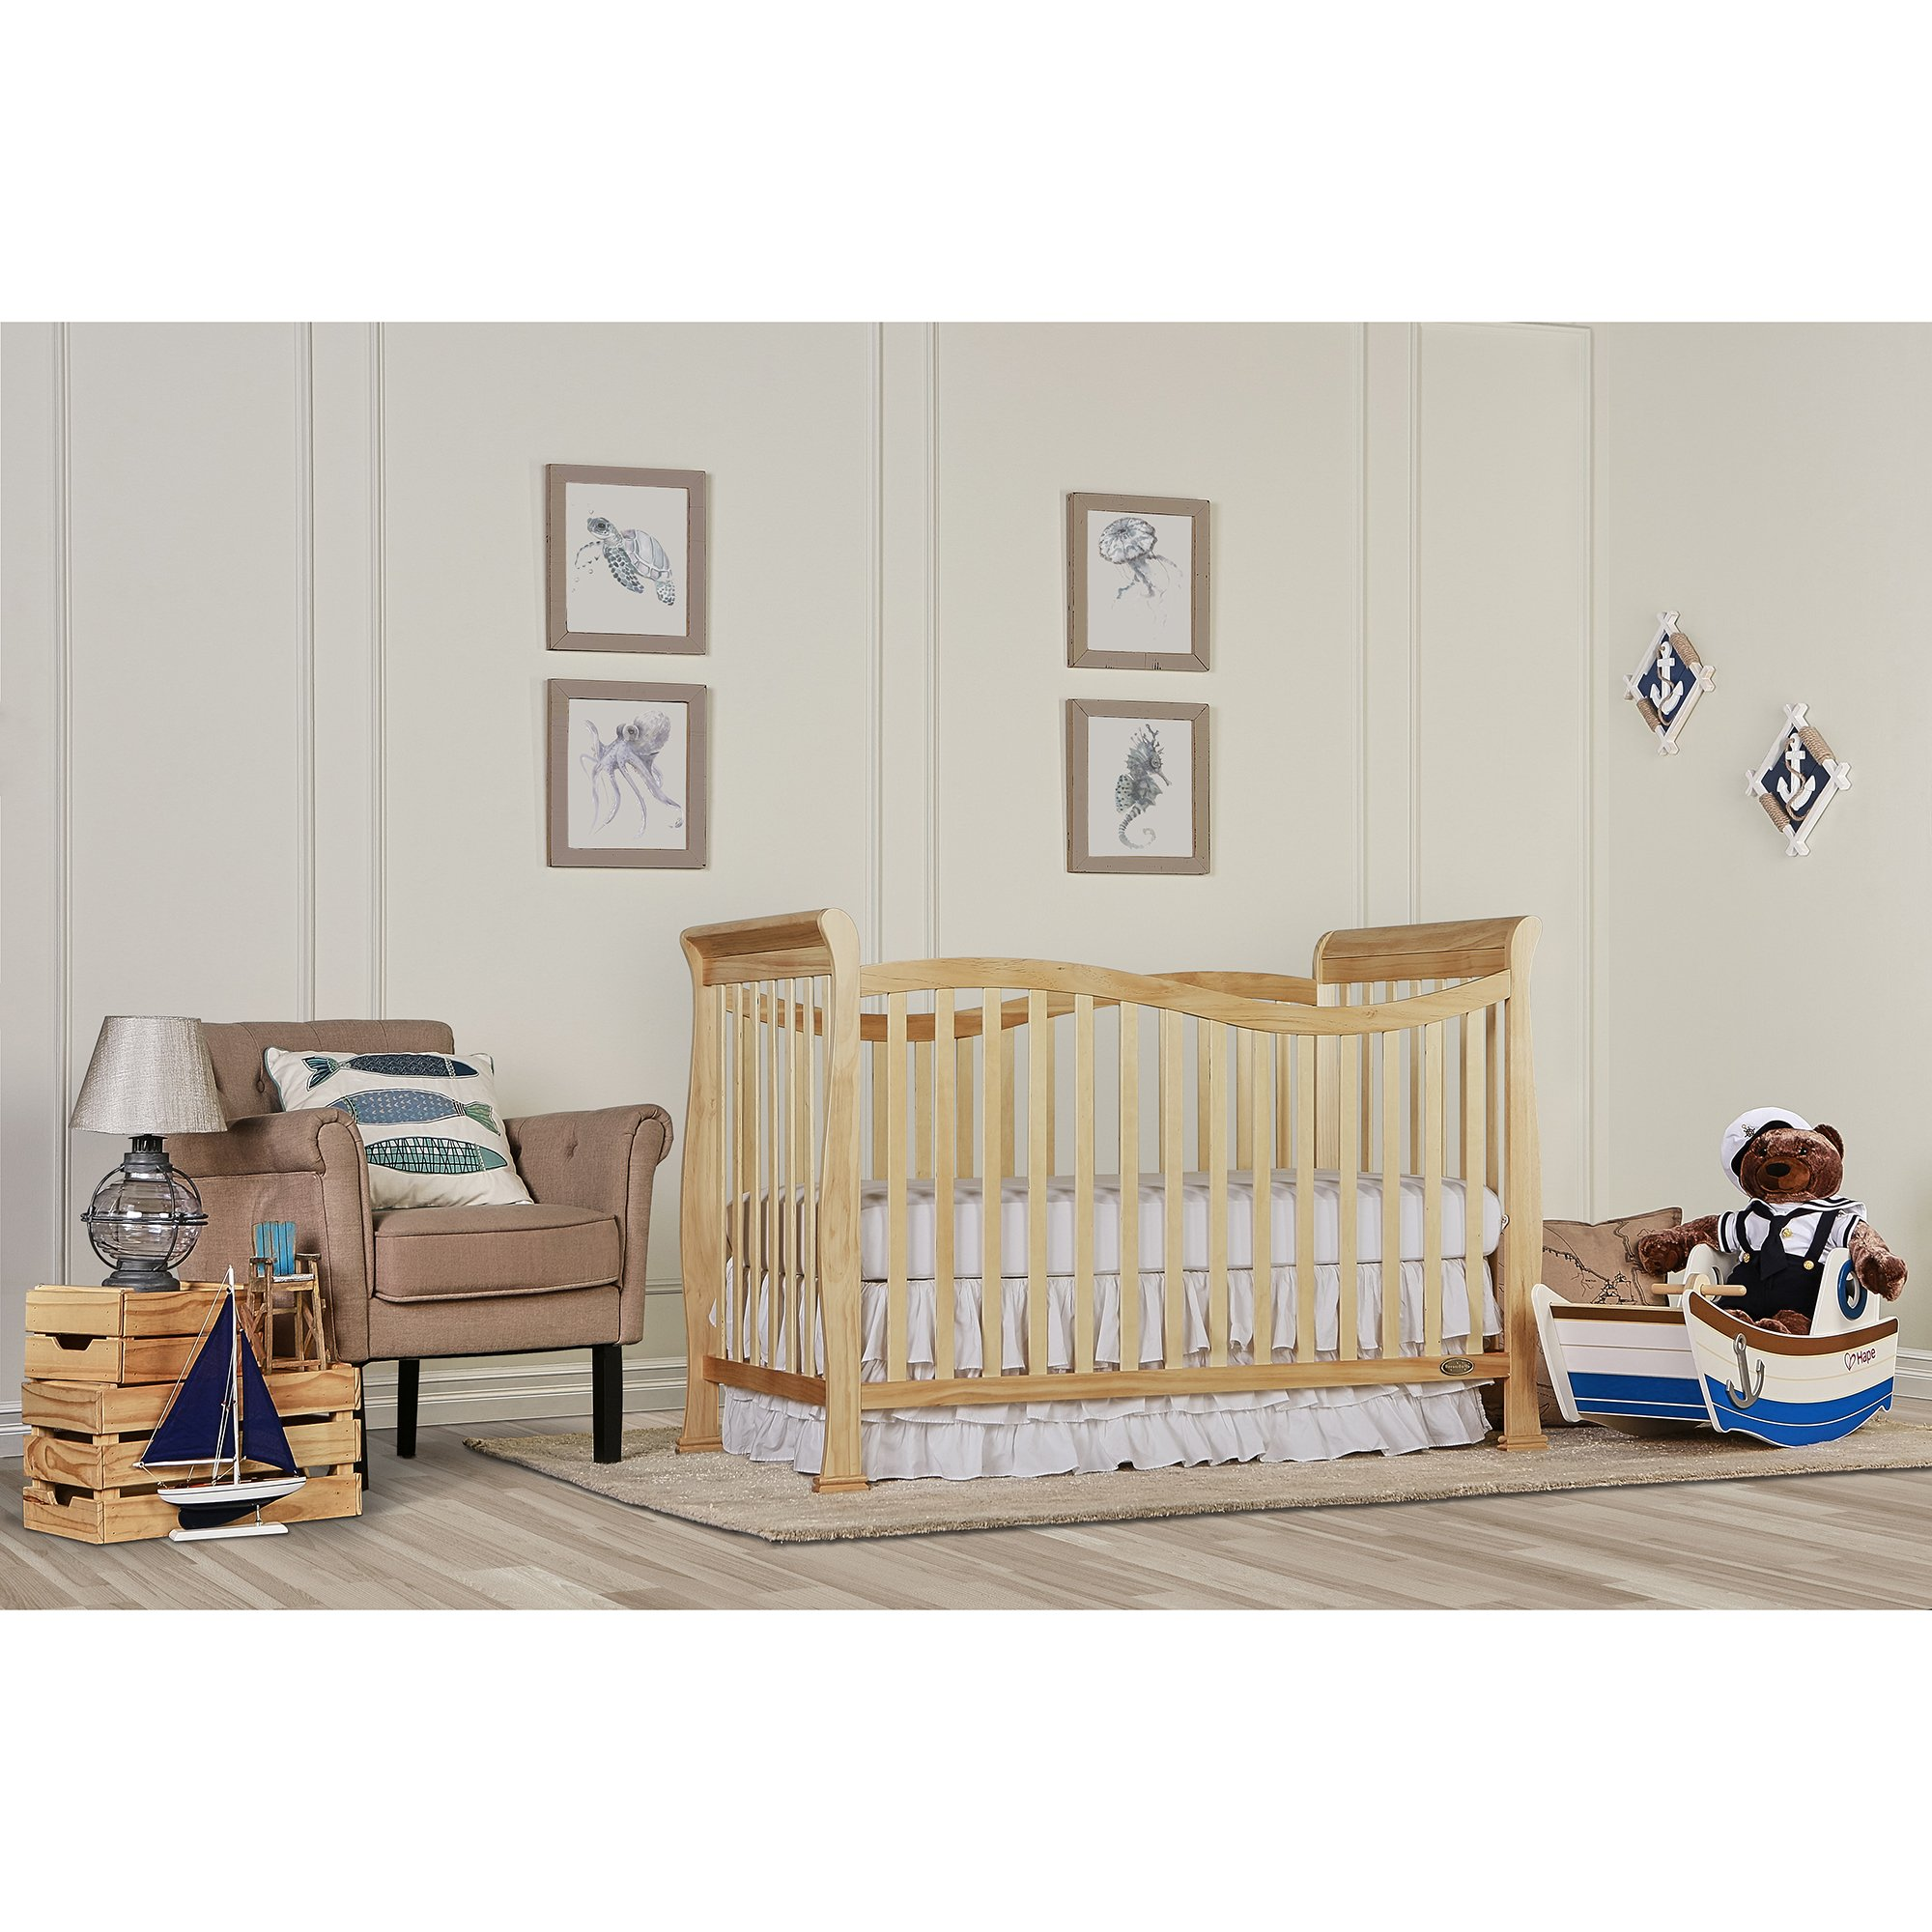 Dream On Me Violet 7 in 1 Convertible Life Style Crib, Natural by Dream On Me (Image #2)